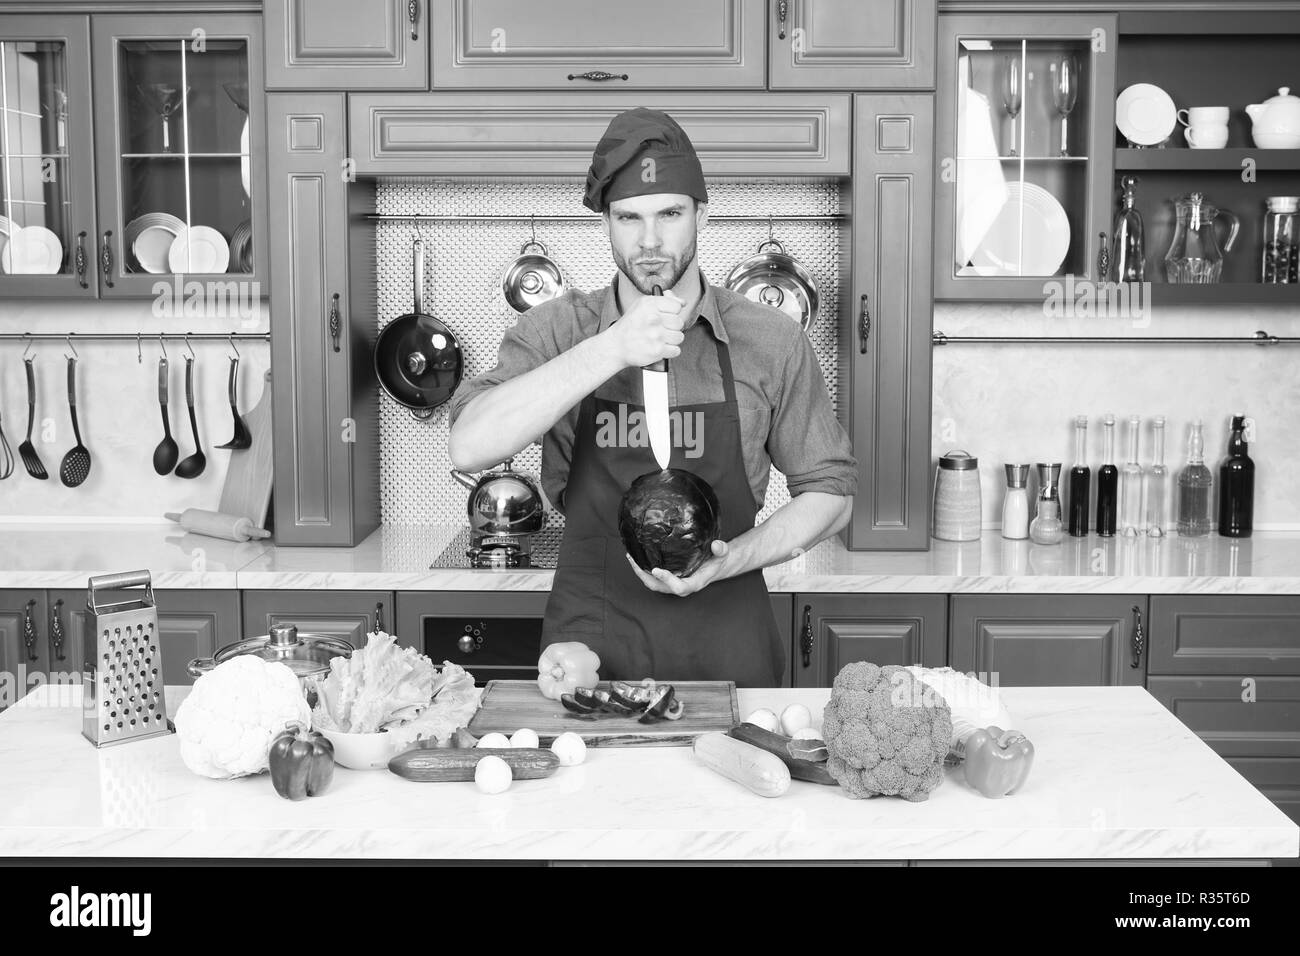 Professional cook. Chef teaches how quickly chop vegetables. Chop food safely and efficiently, ensure that you use the right tools. Learn how hold knife correctly and use right chopping technique. - Stock Image